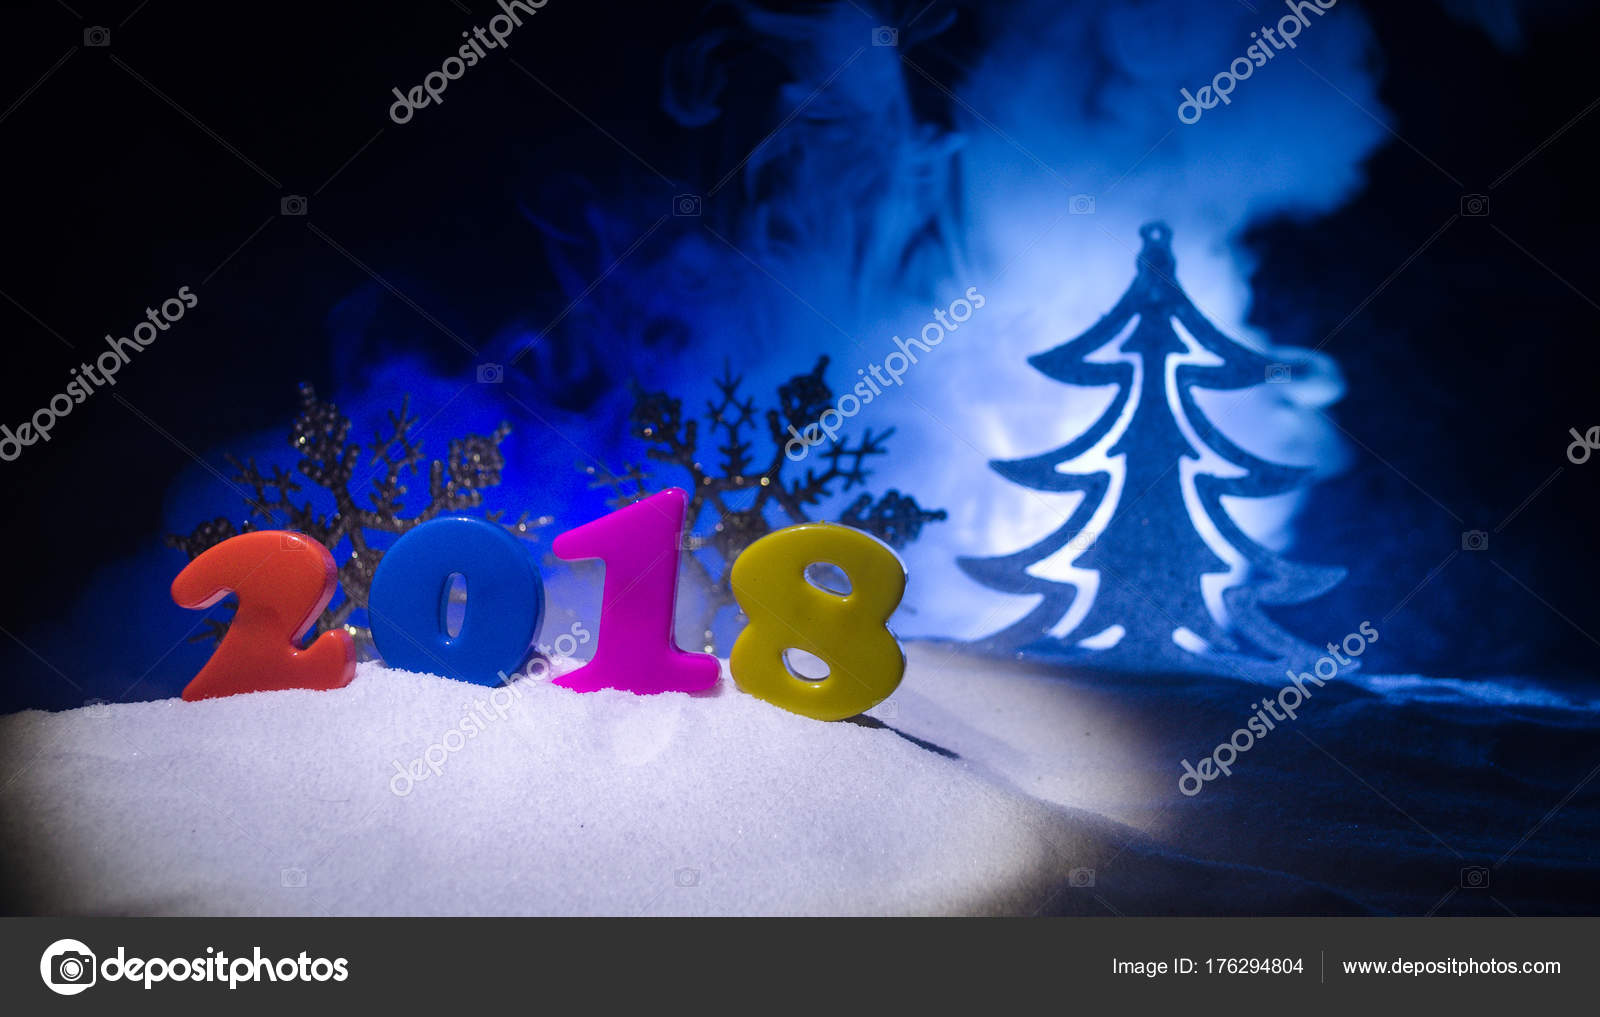 new years eve celebration background with new year elements or symbols decoration for greeting card